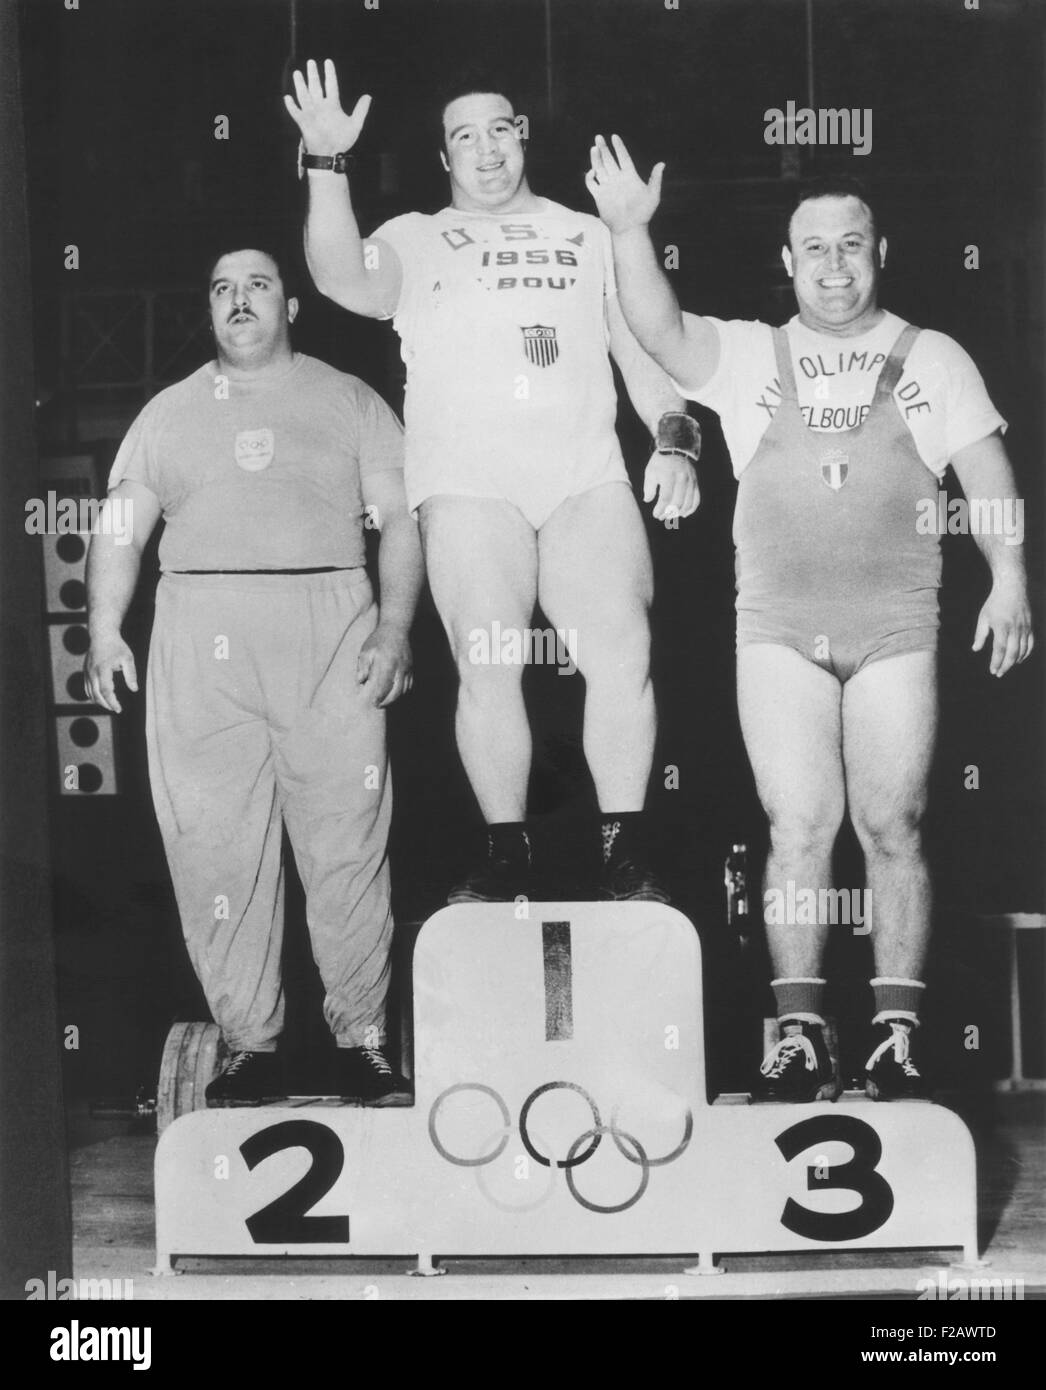 Paul Anderson (center) won a Olympic Gold Medal in heavyweight weightlifting. Melbourne, Australia Games, Nov. 26, - Stock Image